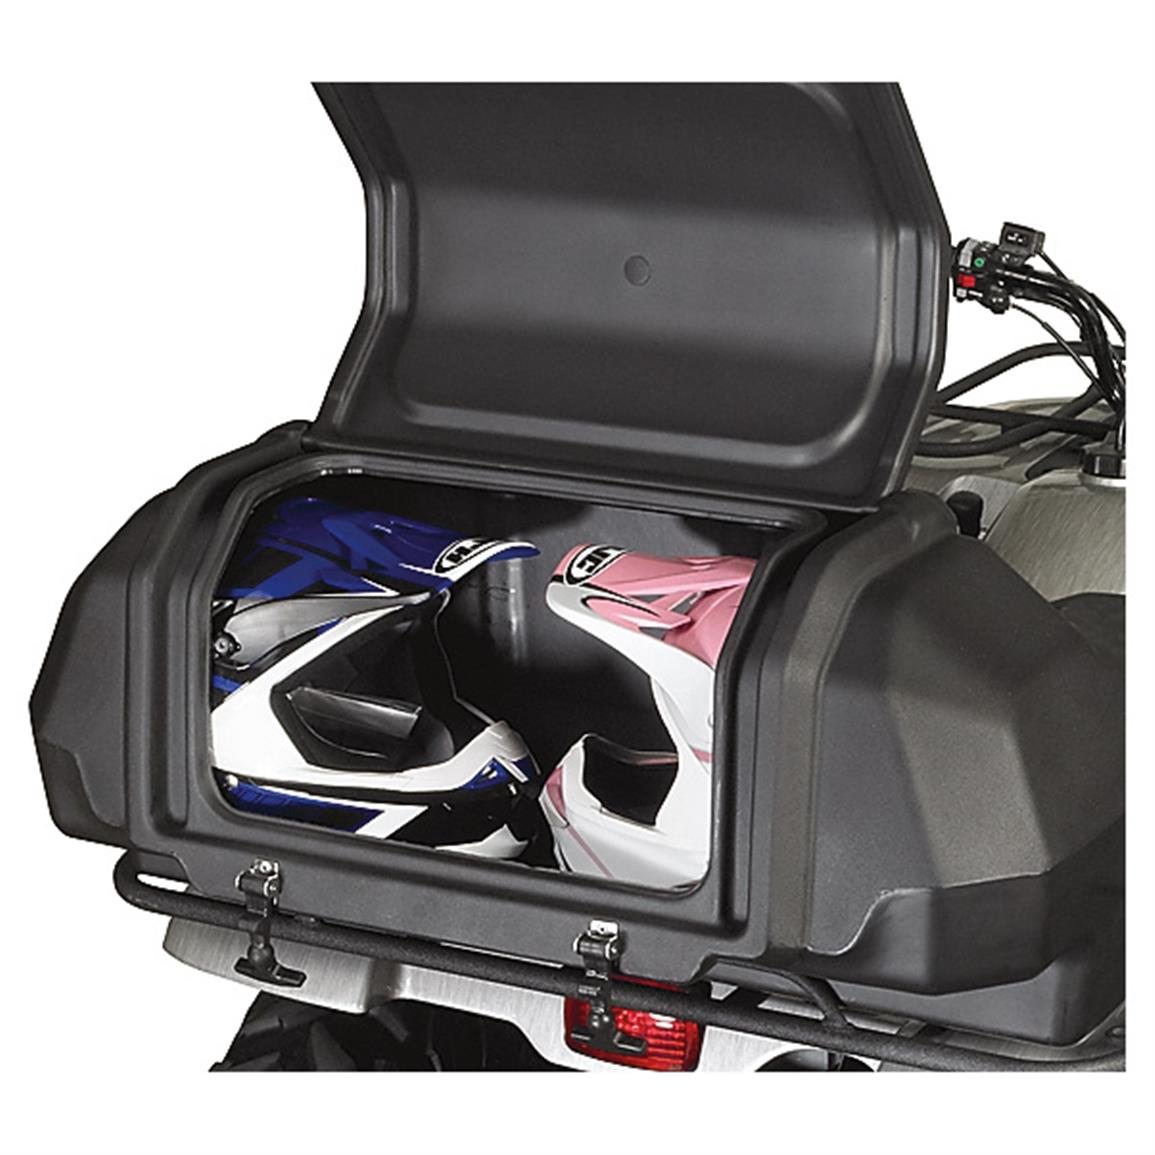 Roomy storage for helmets and more!